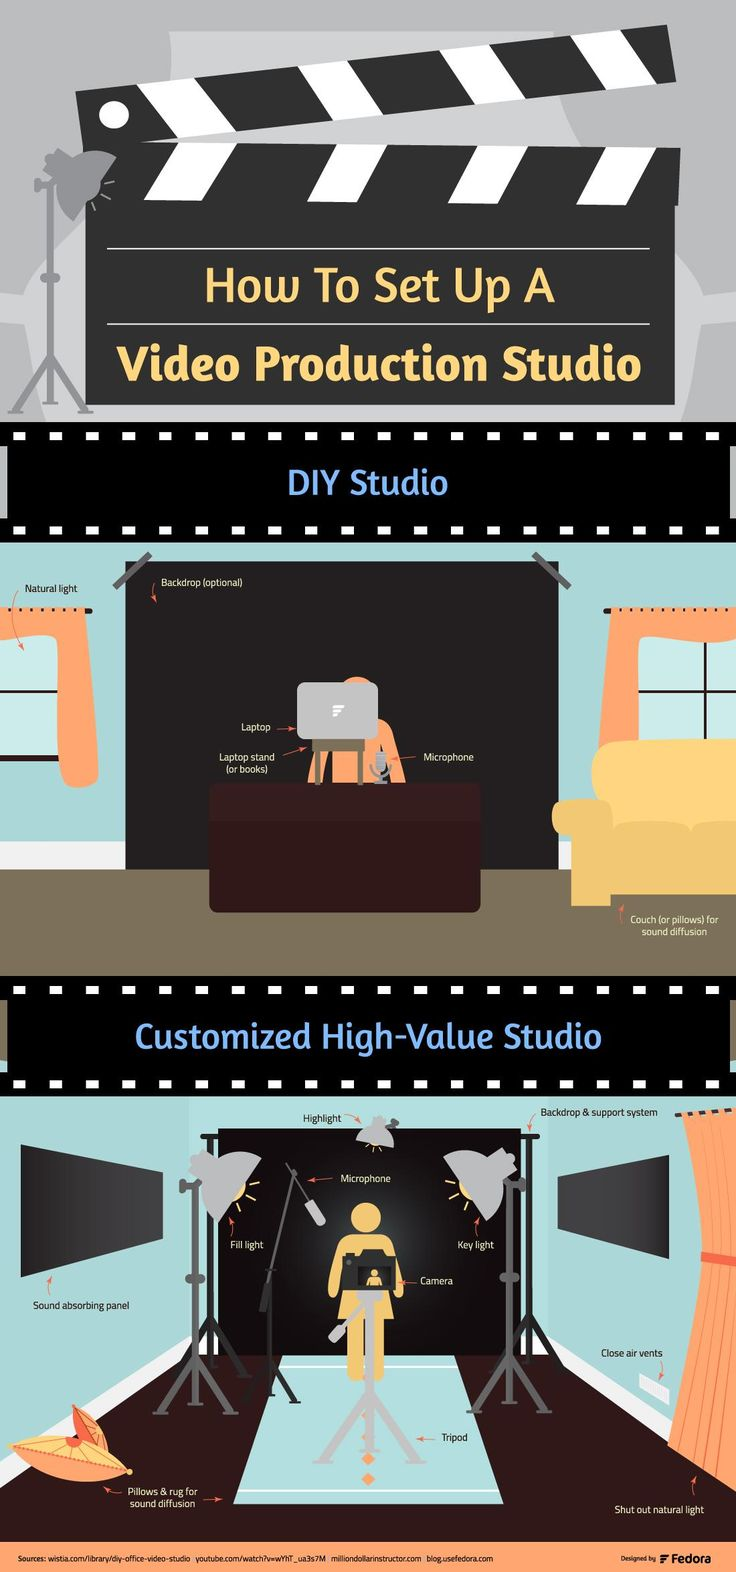 Off Spencer's room.  Set up your own in-home DIY video production studio to add content to your blog, online course, website or just for fun [